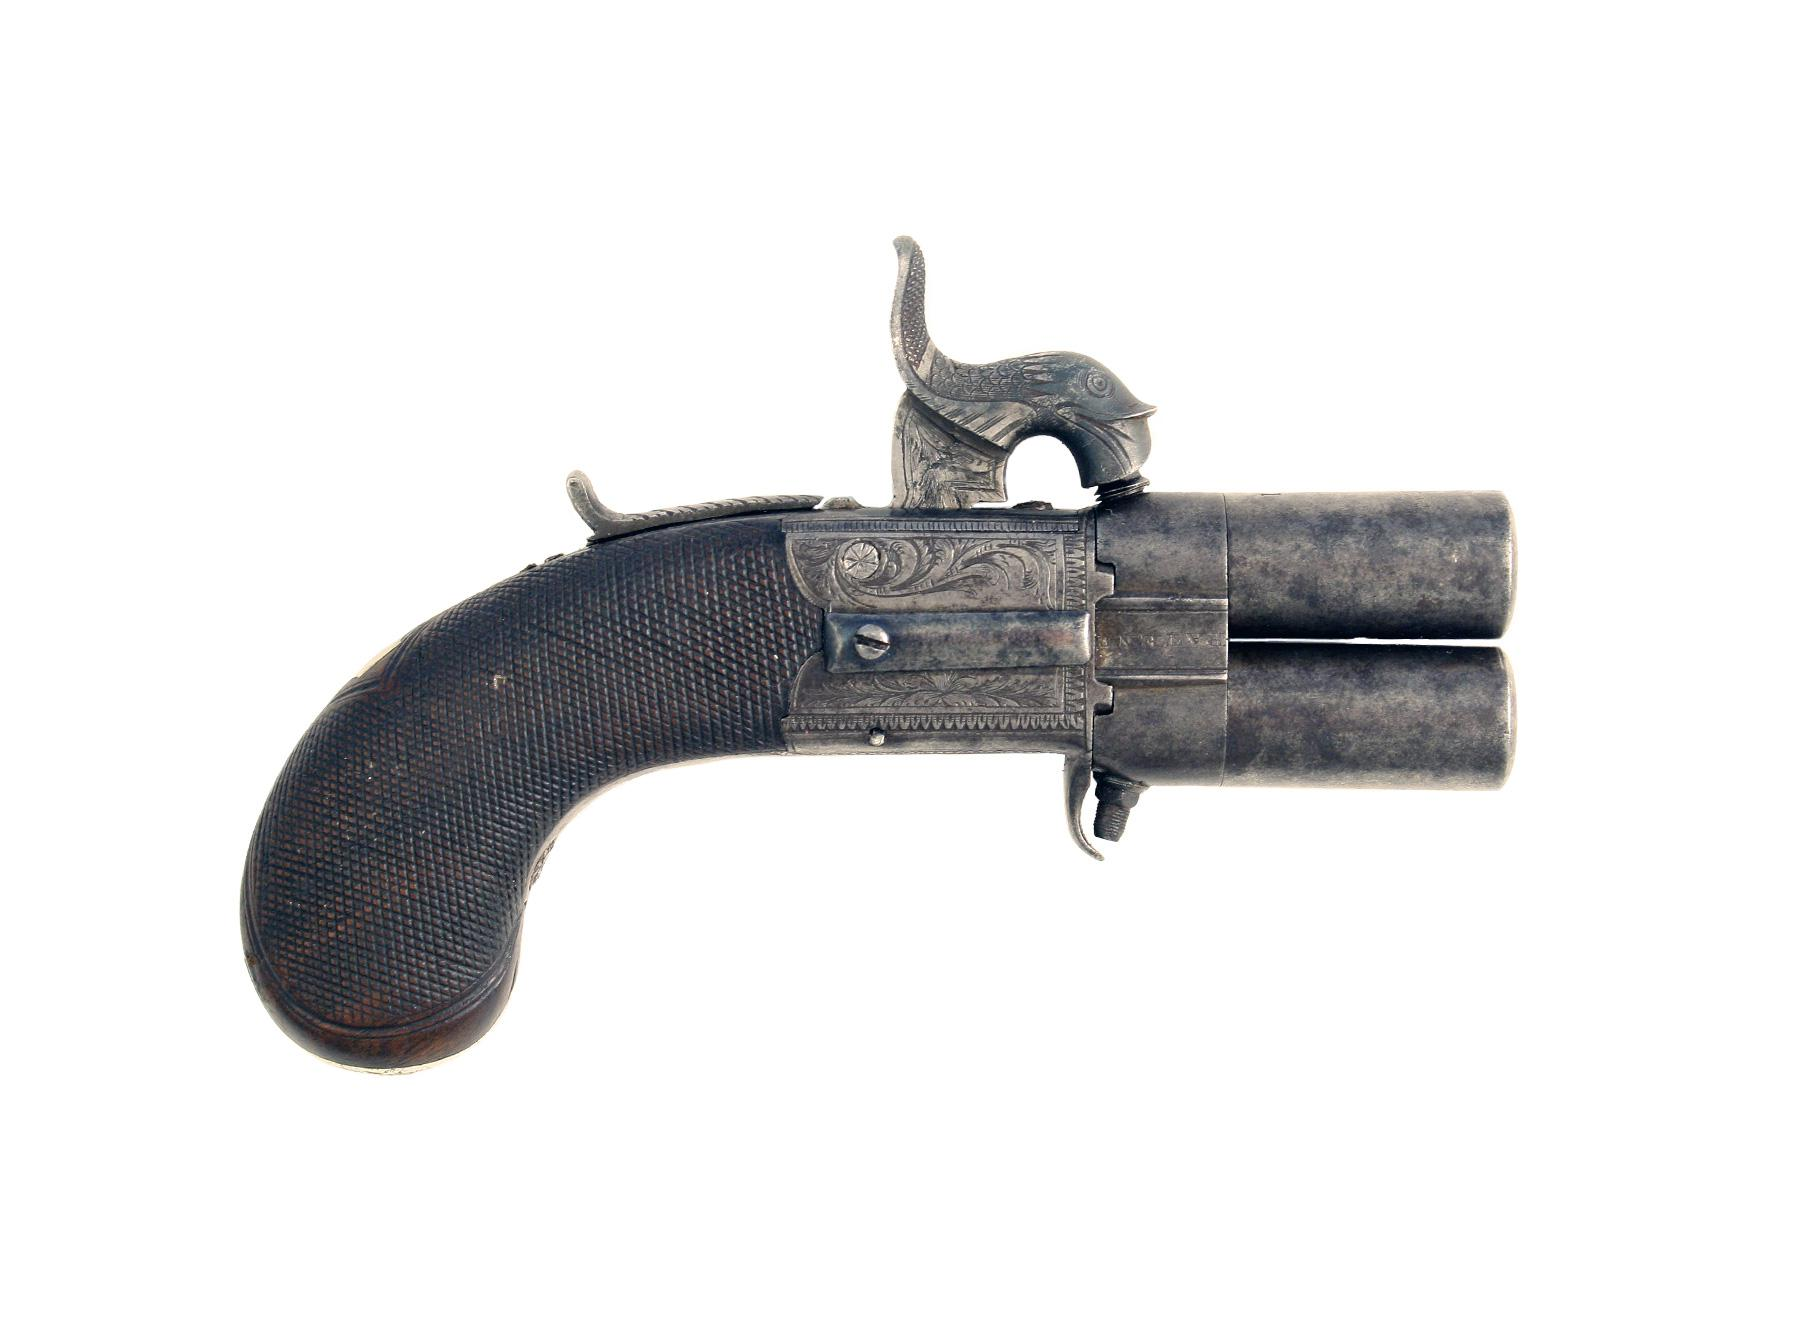 A Small Turn-Over Pistol by Lang